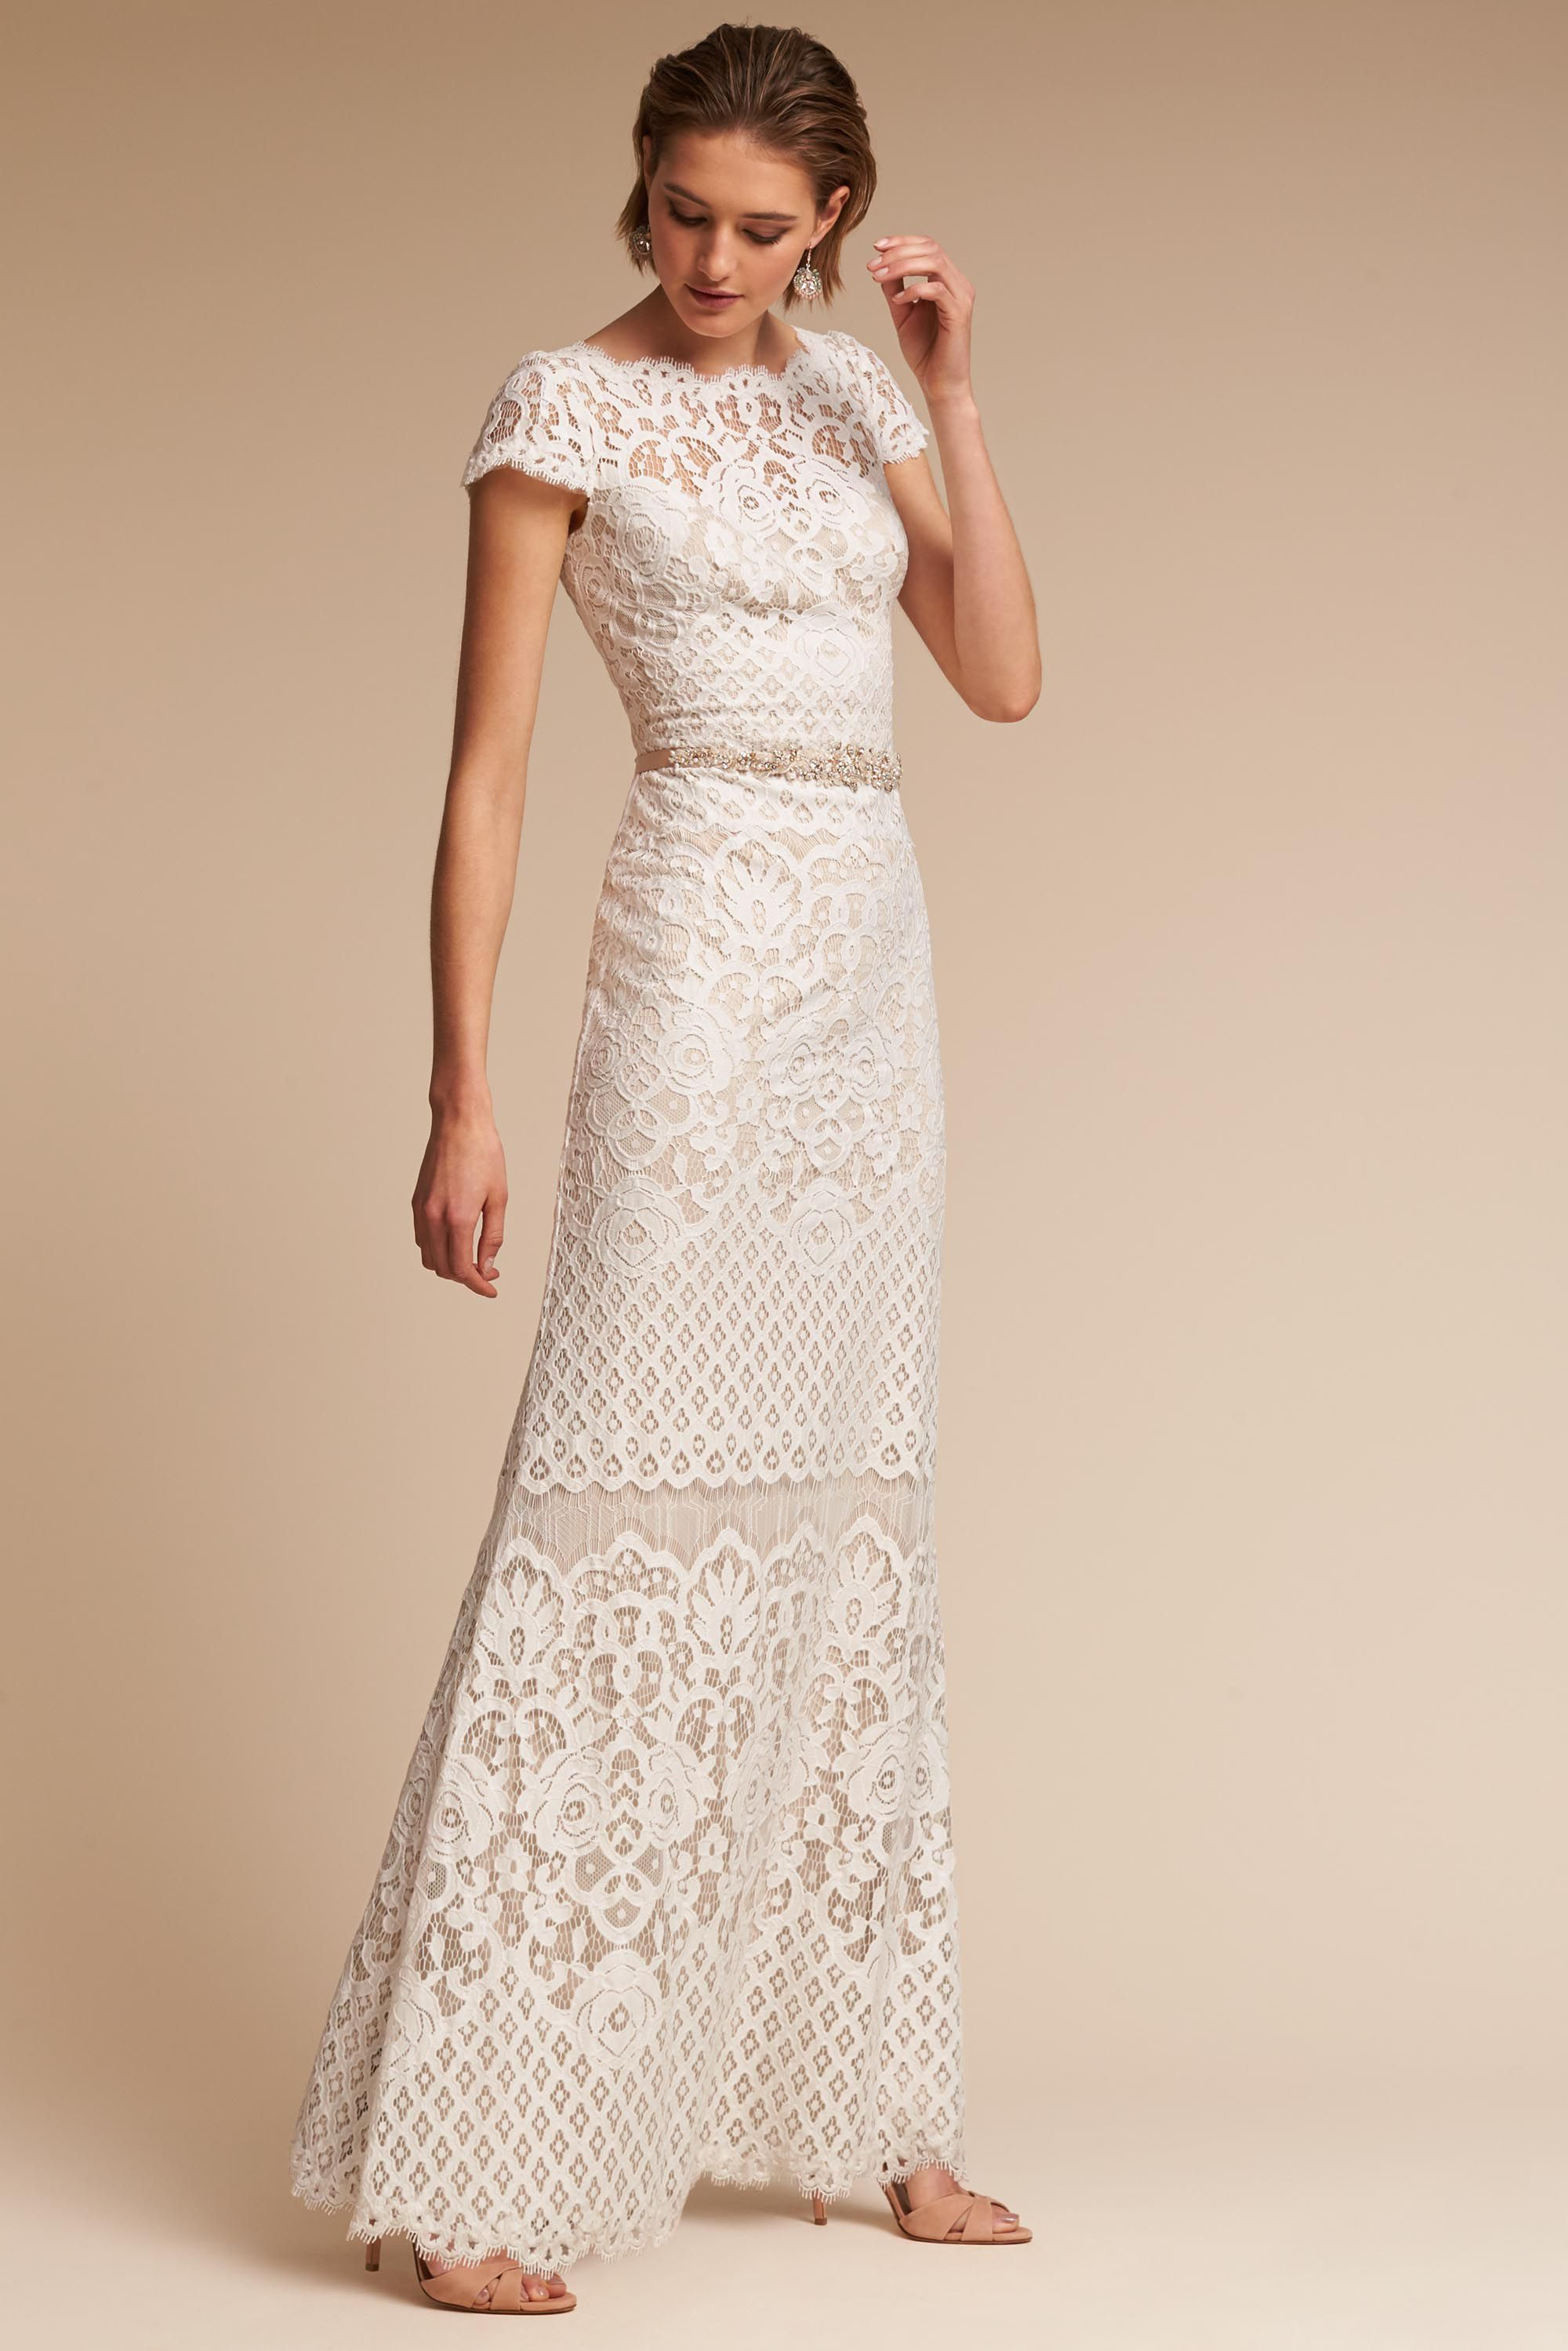 1a03f37f214 We are obsessed with these 20 gorgeous wedding dresses under  1000! Why  break the bank when it comes to finding your dream gown. These beauties are  sure to ...